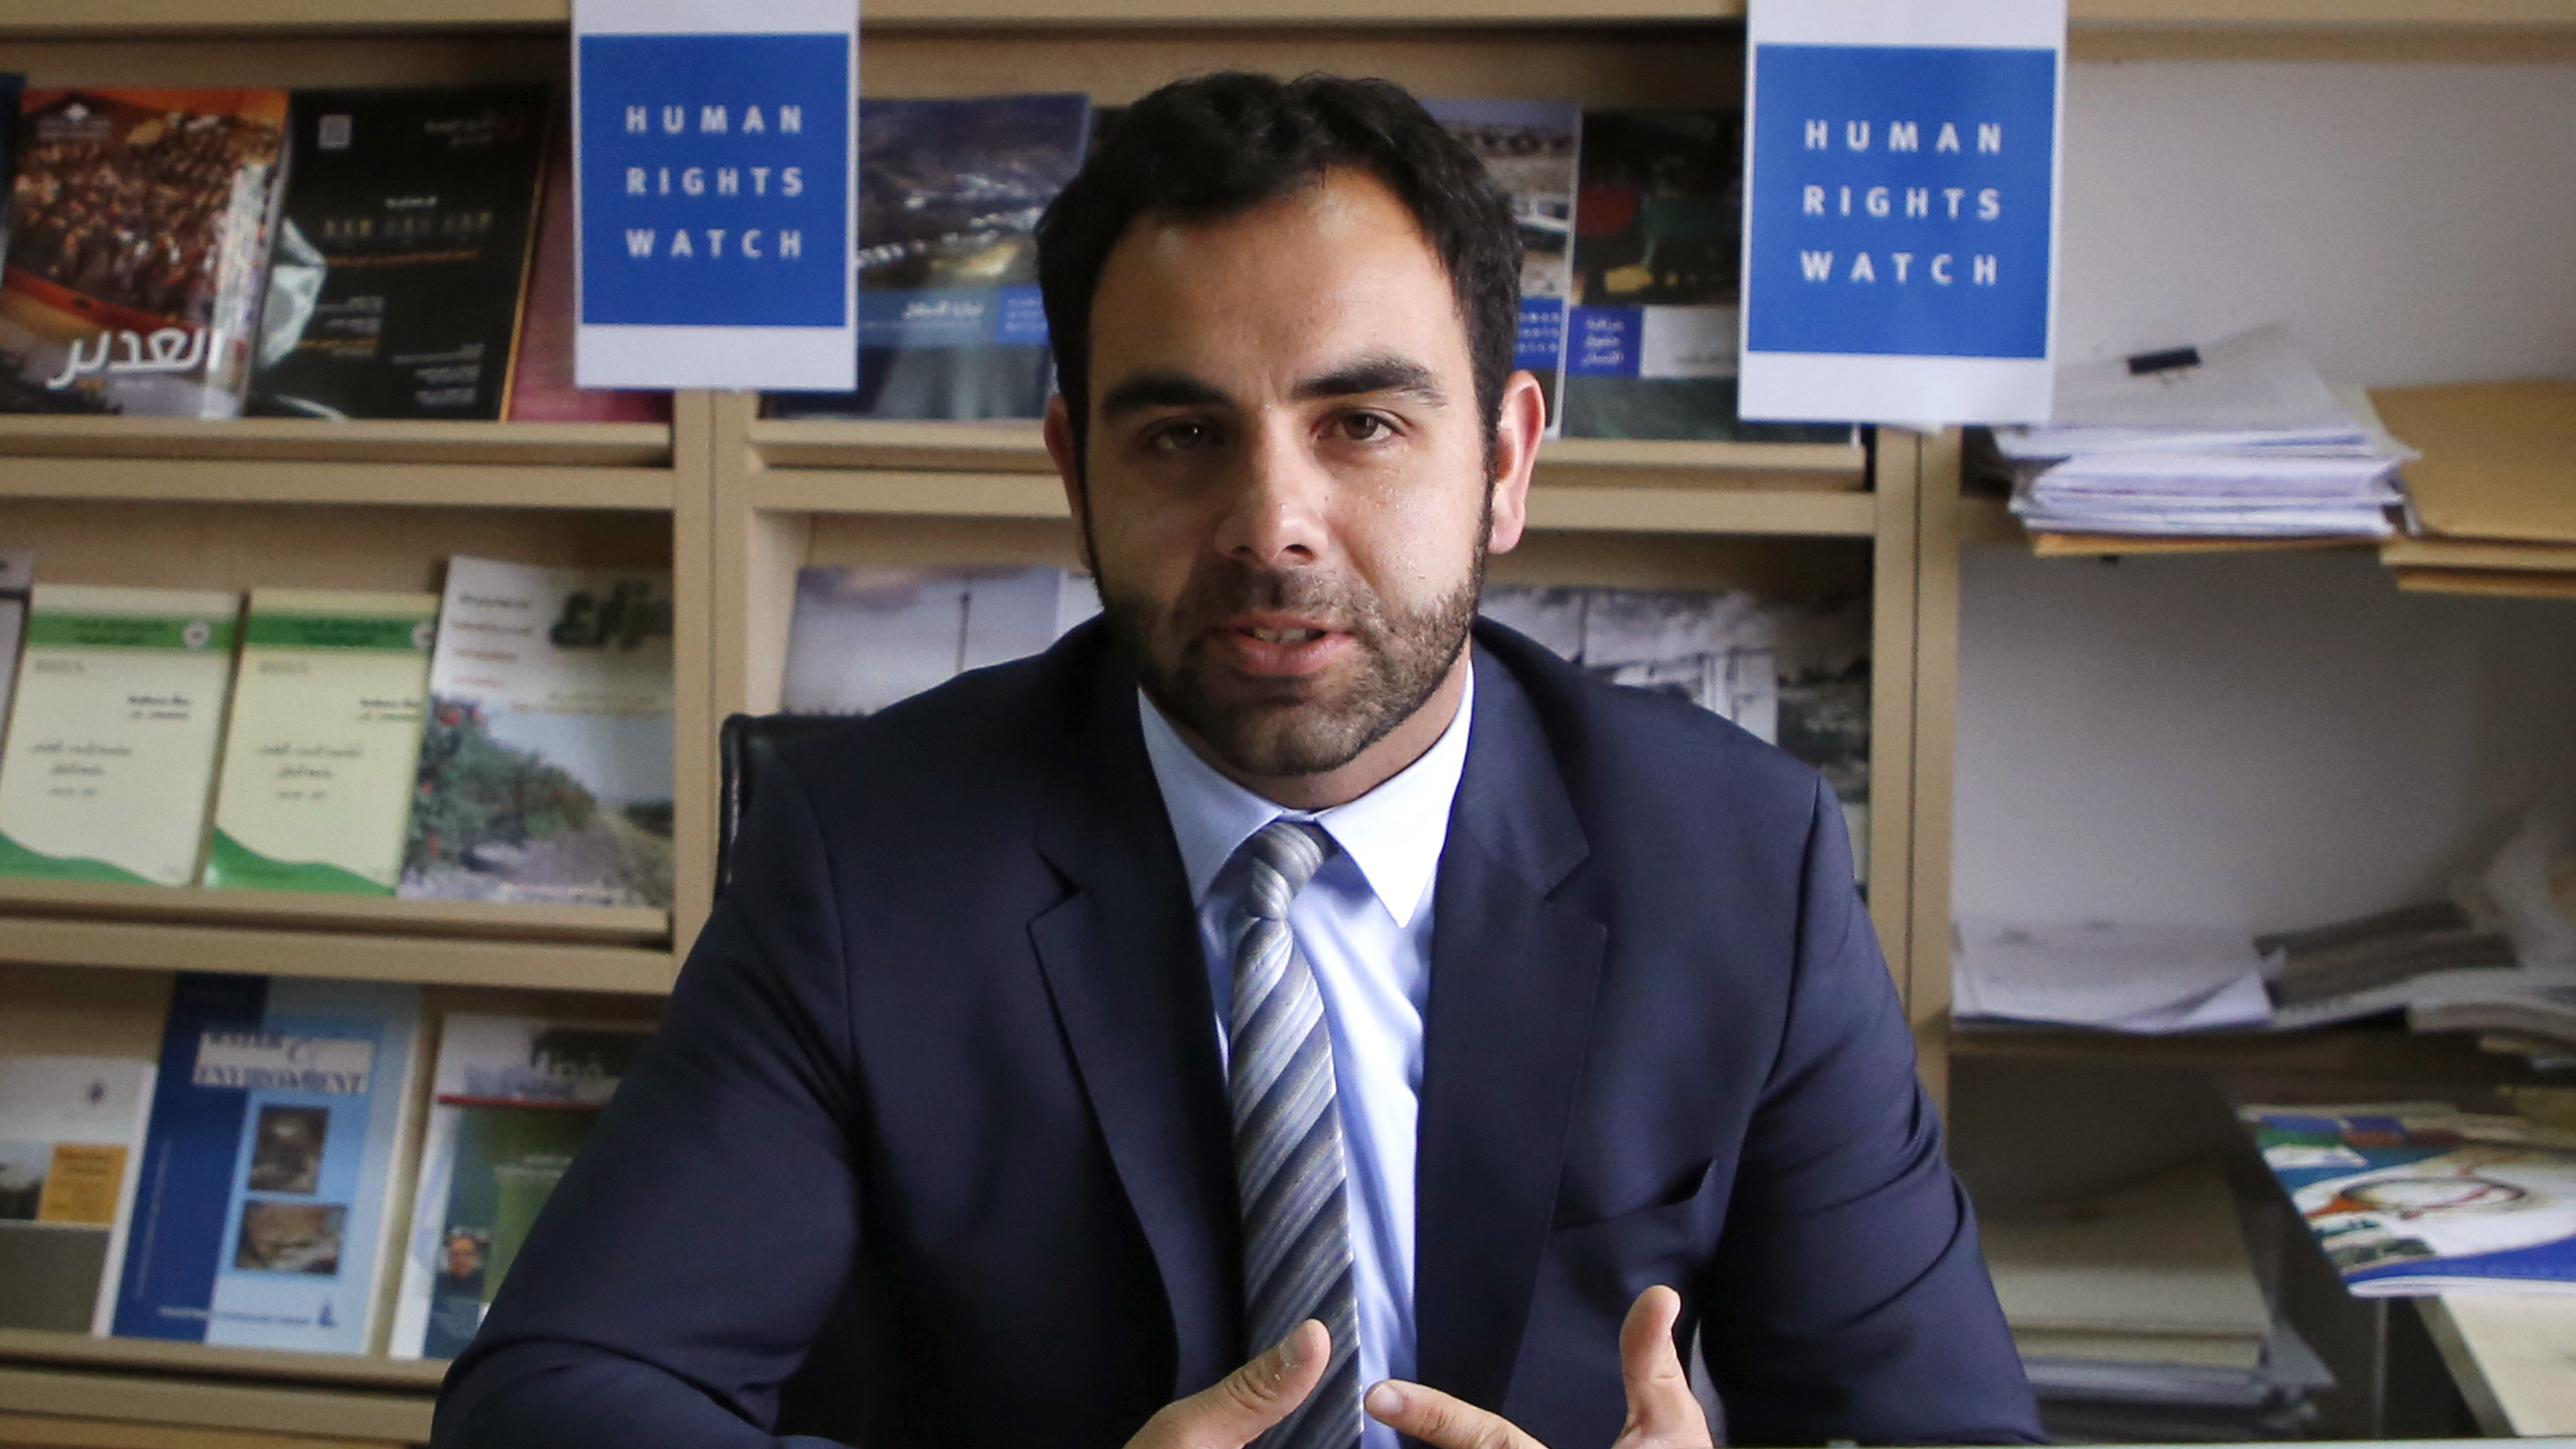 Israeli Supreme Court Upholds Deportation of Human Rights Watch Official